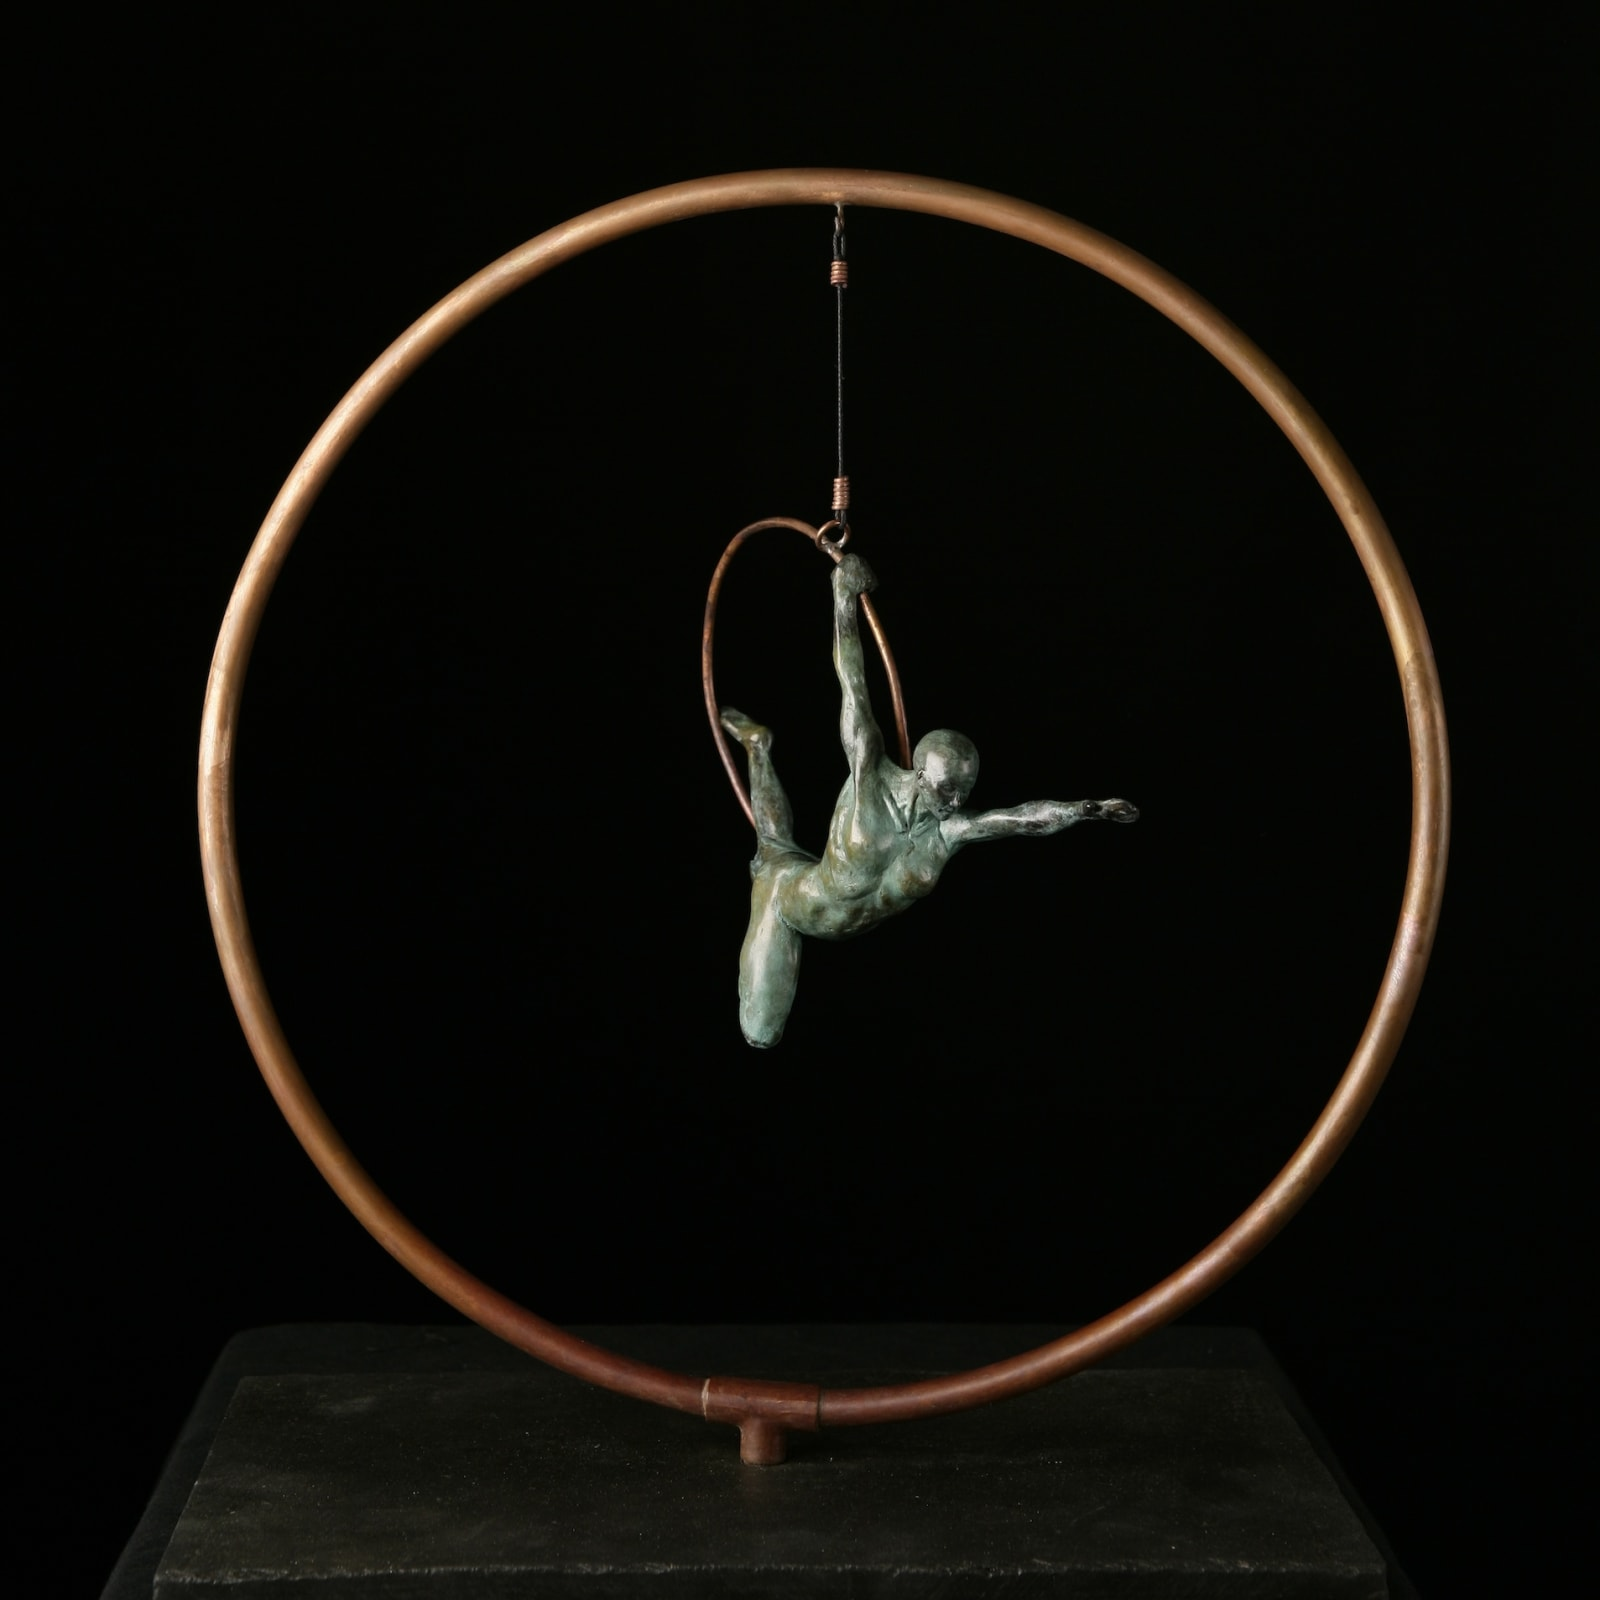 Brendon Murless  Rings, 2019  Bronze Sculpture  37 x 33 x 10 cm  14 5/8 x 13 x 4 in  Edition 7 of 8